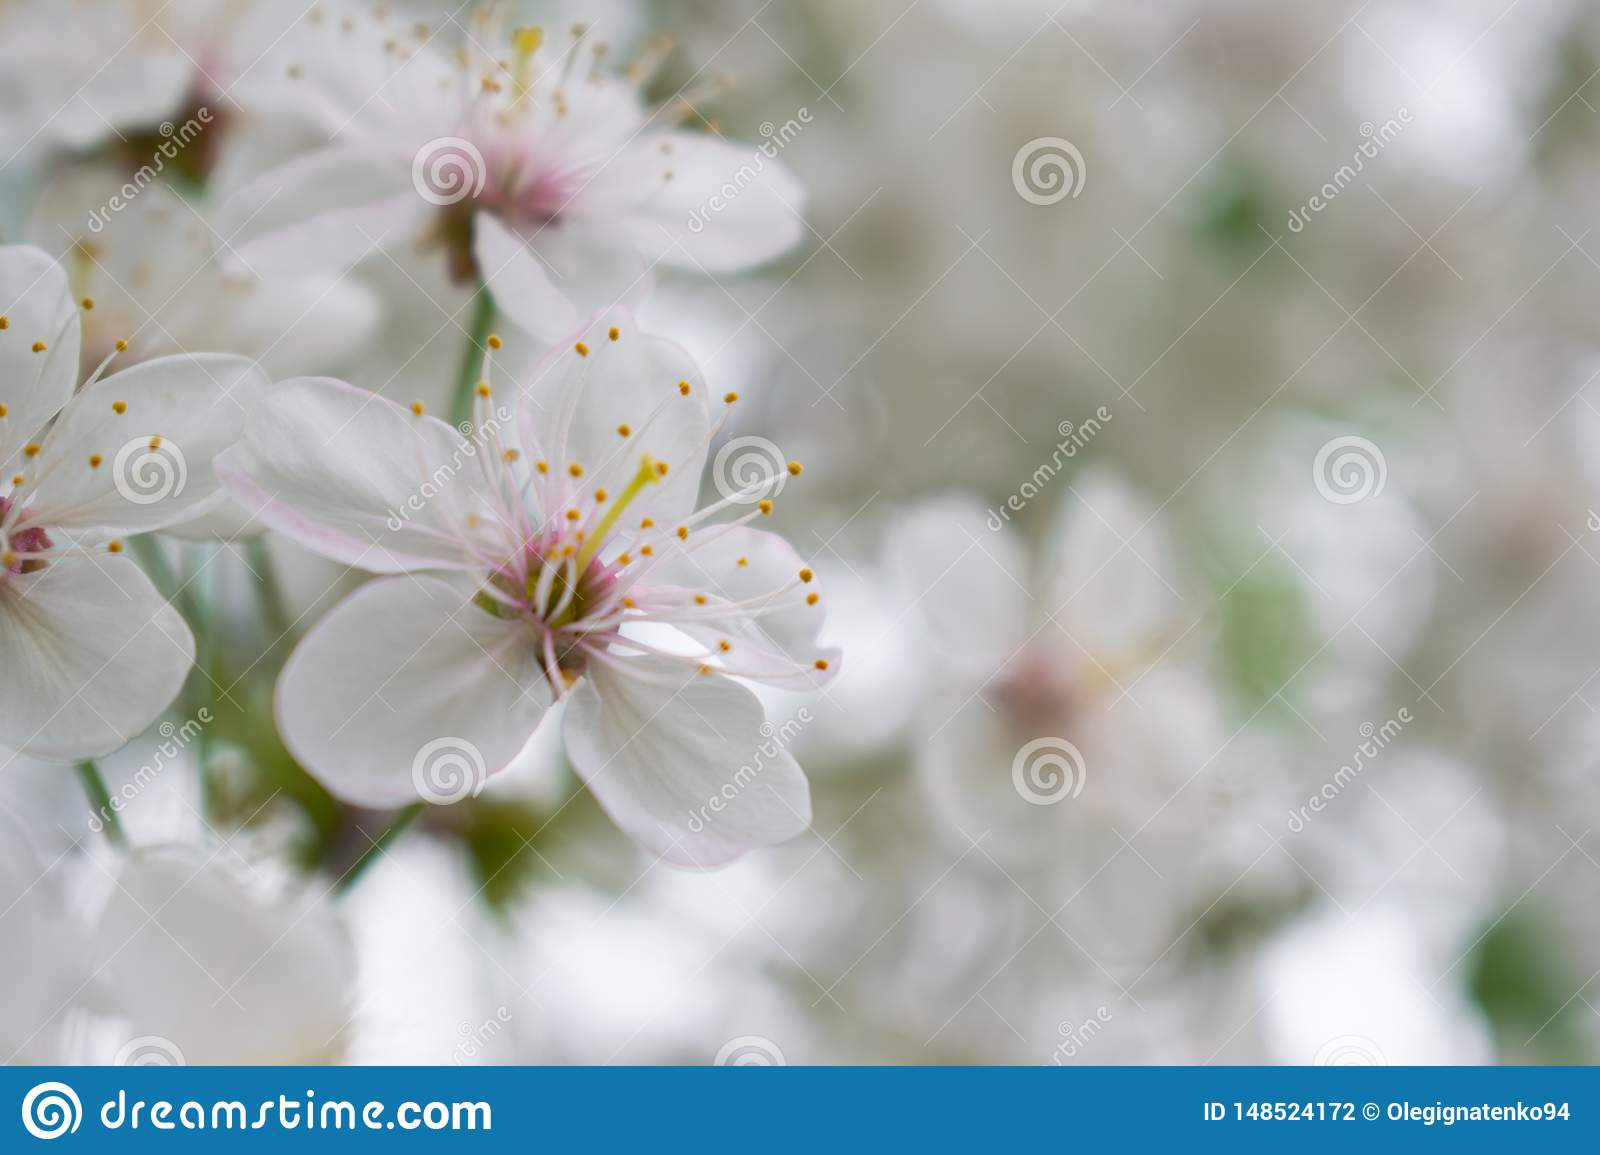 Cherry tree with white flowers for backgroudn